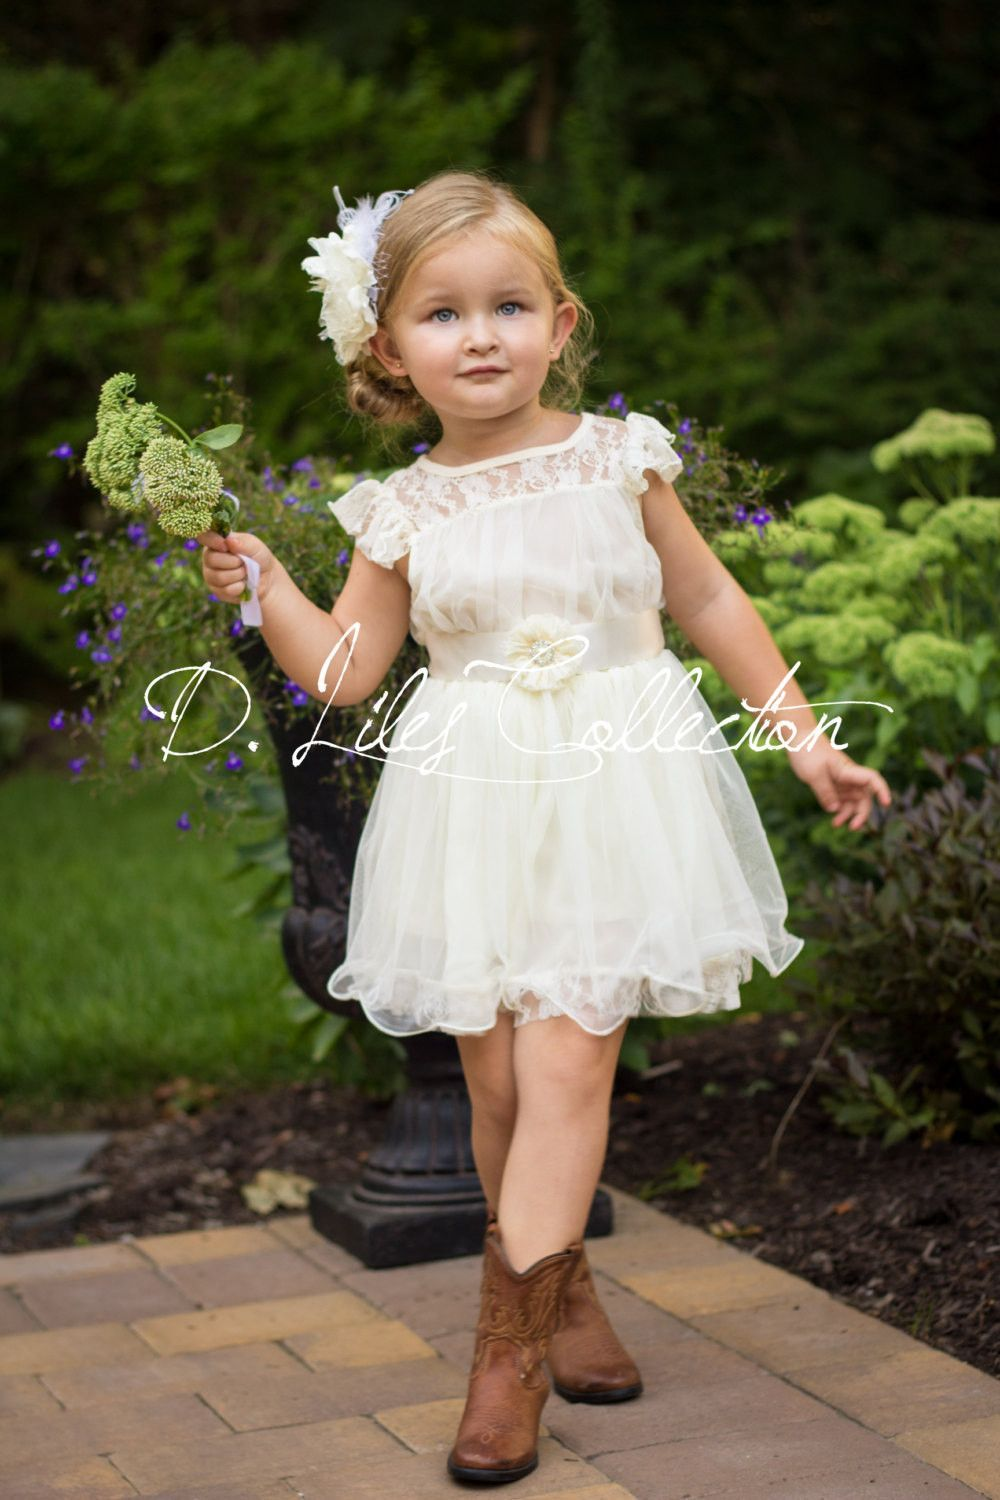 Beach wedding flower girl dresses  Charlotte Flower Girl Dress in Ivory   Wedding